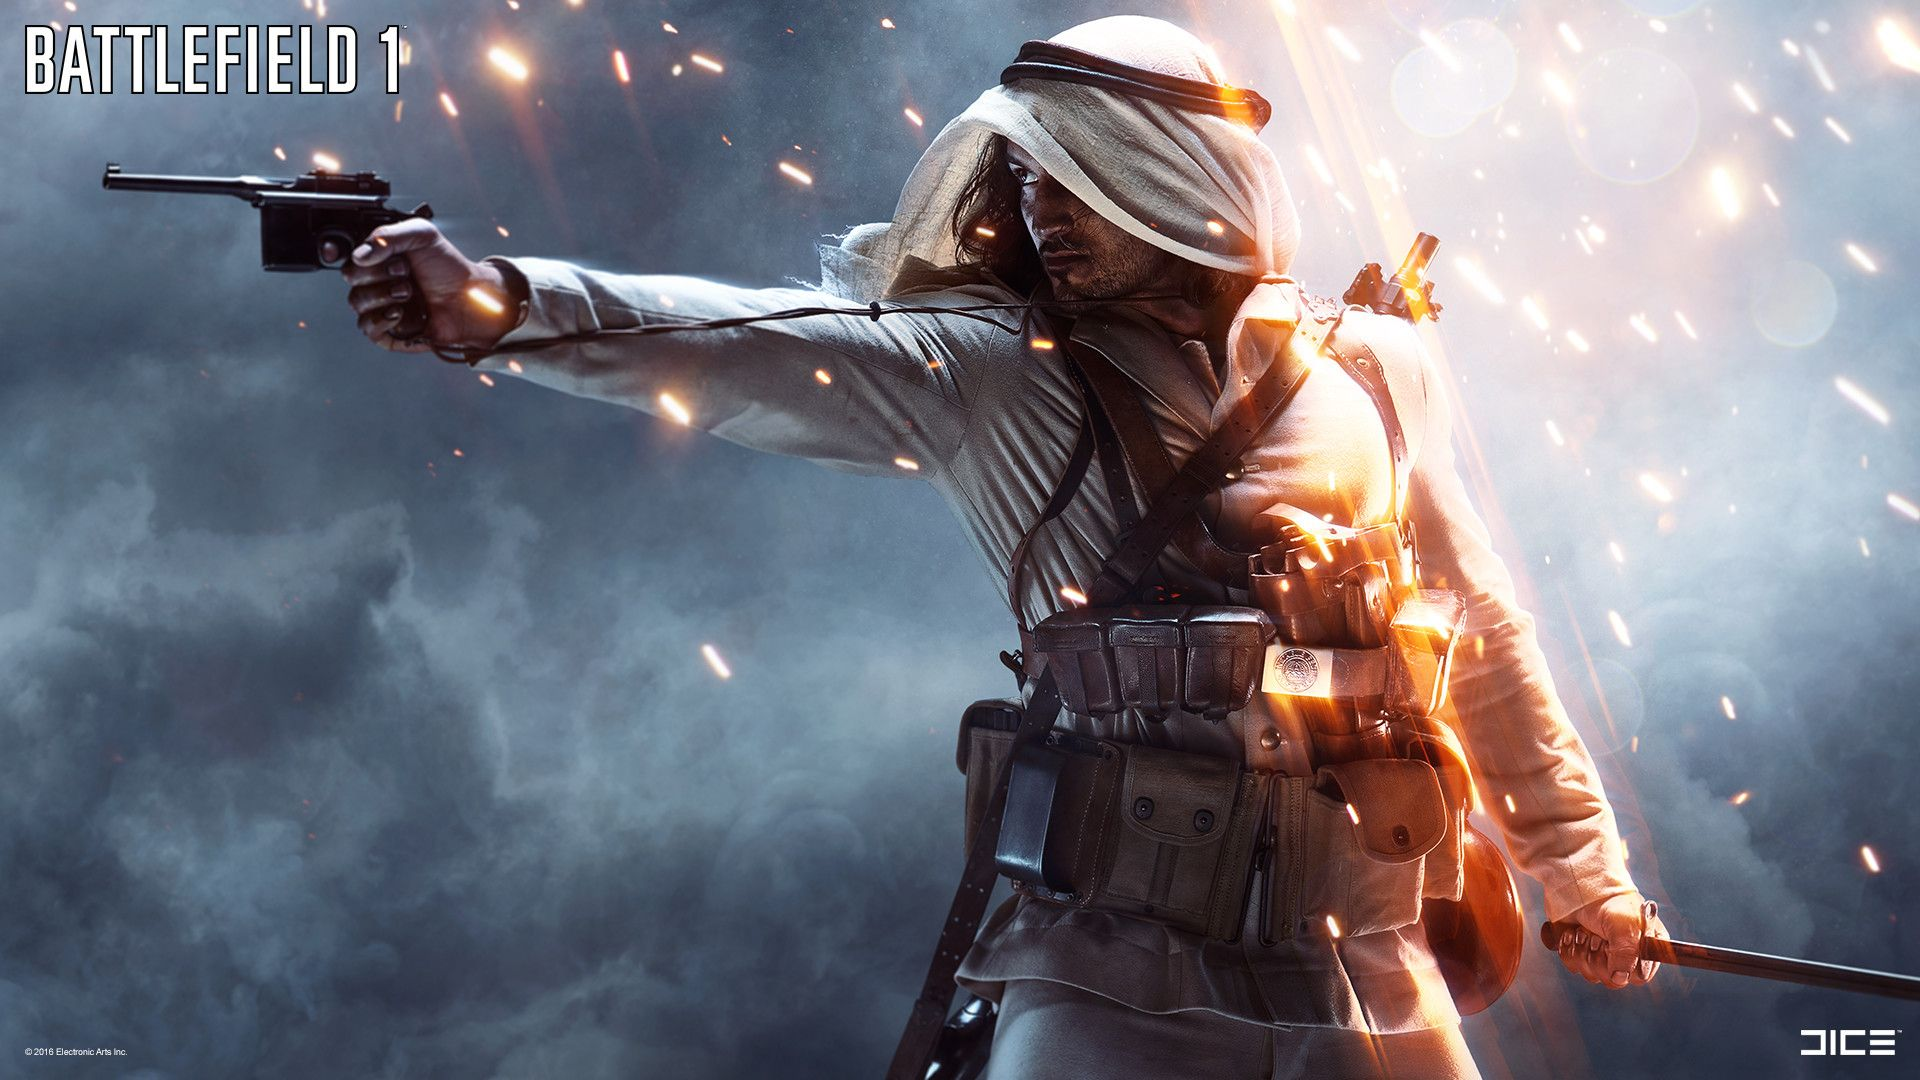 The Art Of Battlefield 1 Battlefield 1 Battlefield Battlefield 1 Game